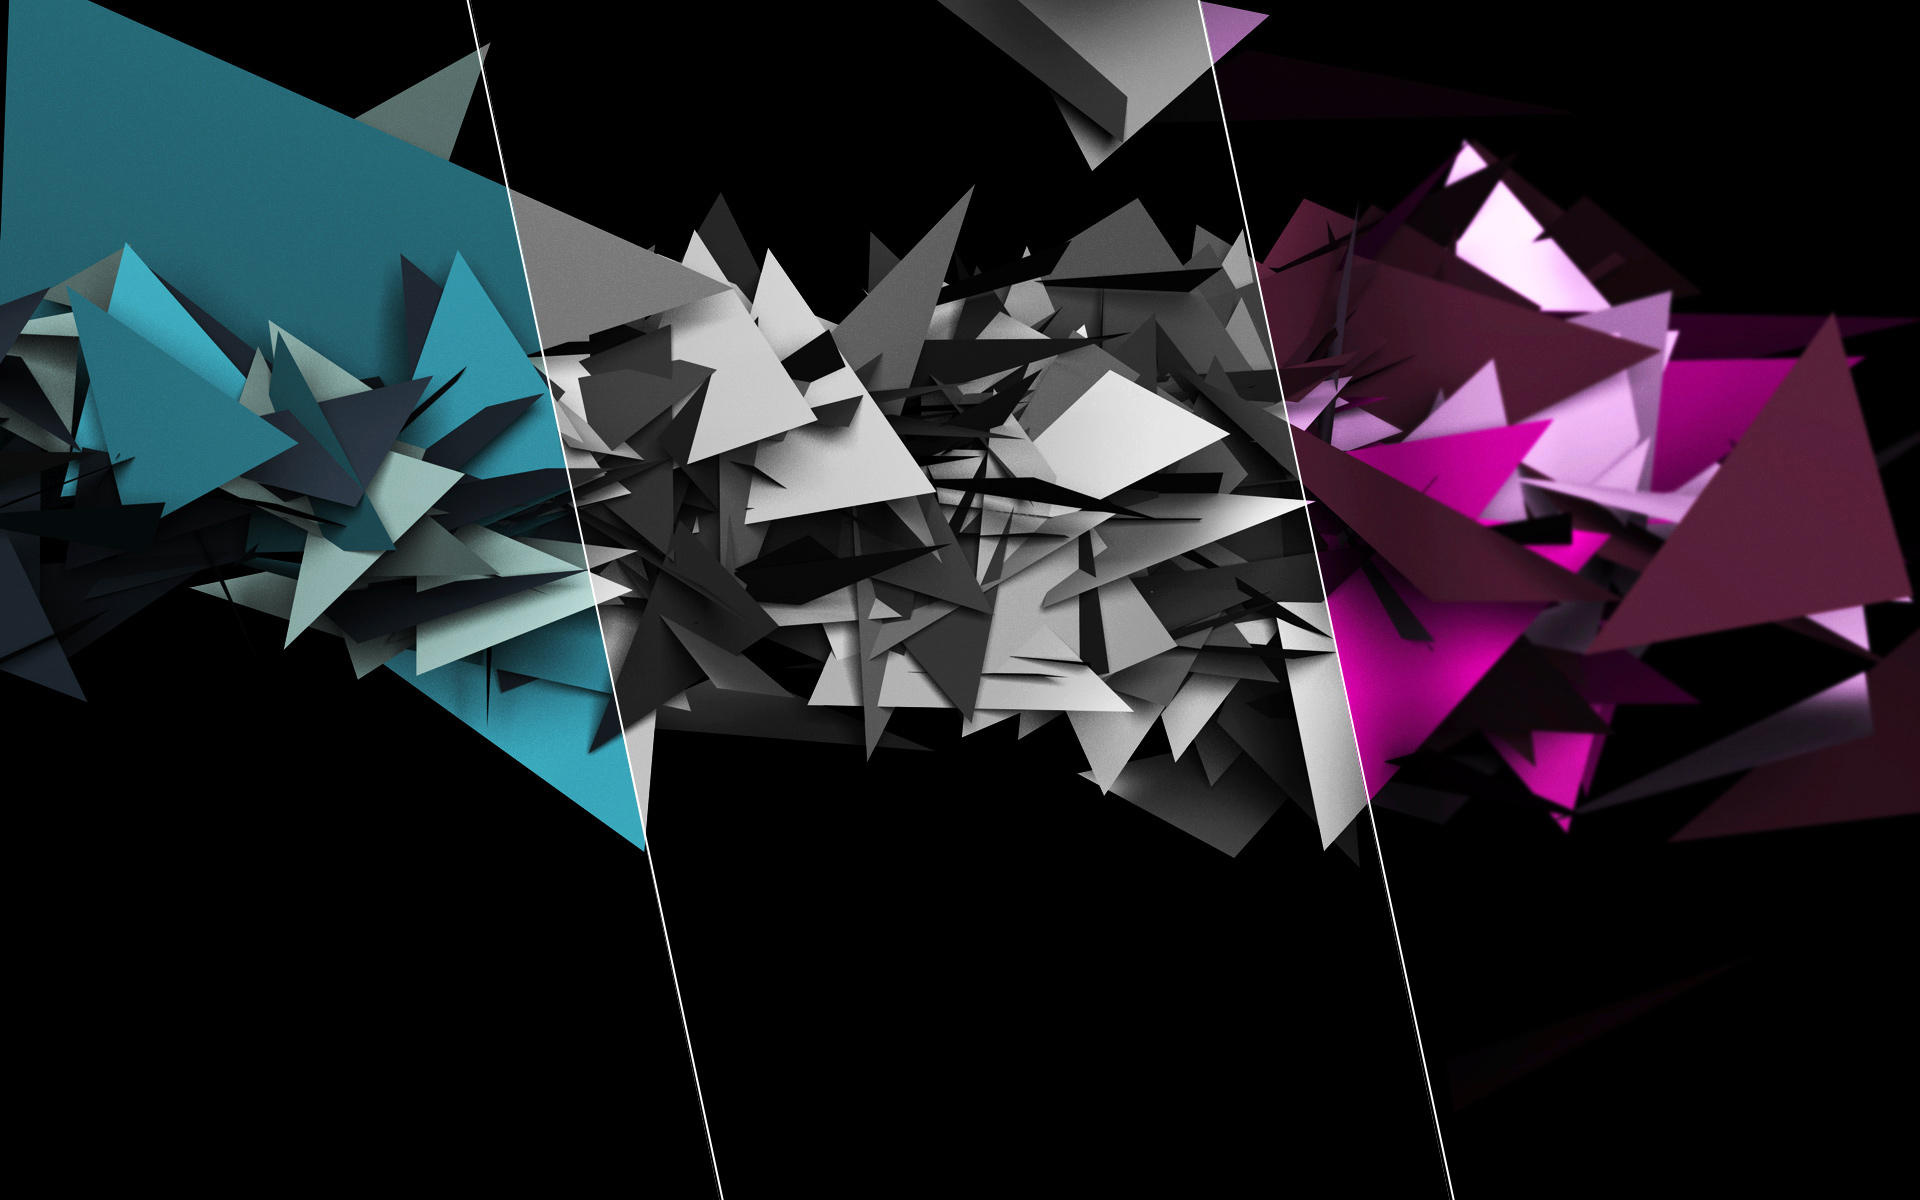 cinema 4d wallpapers 1366x768 - photo #35